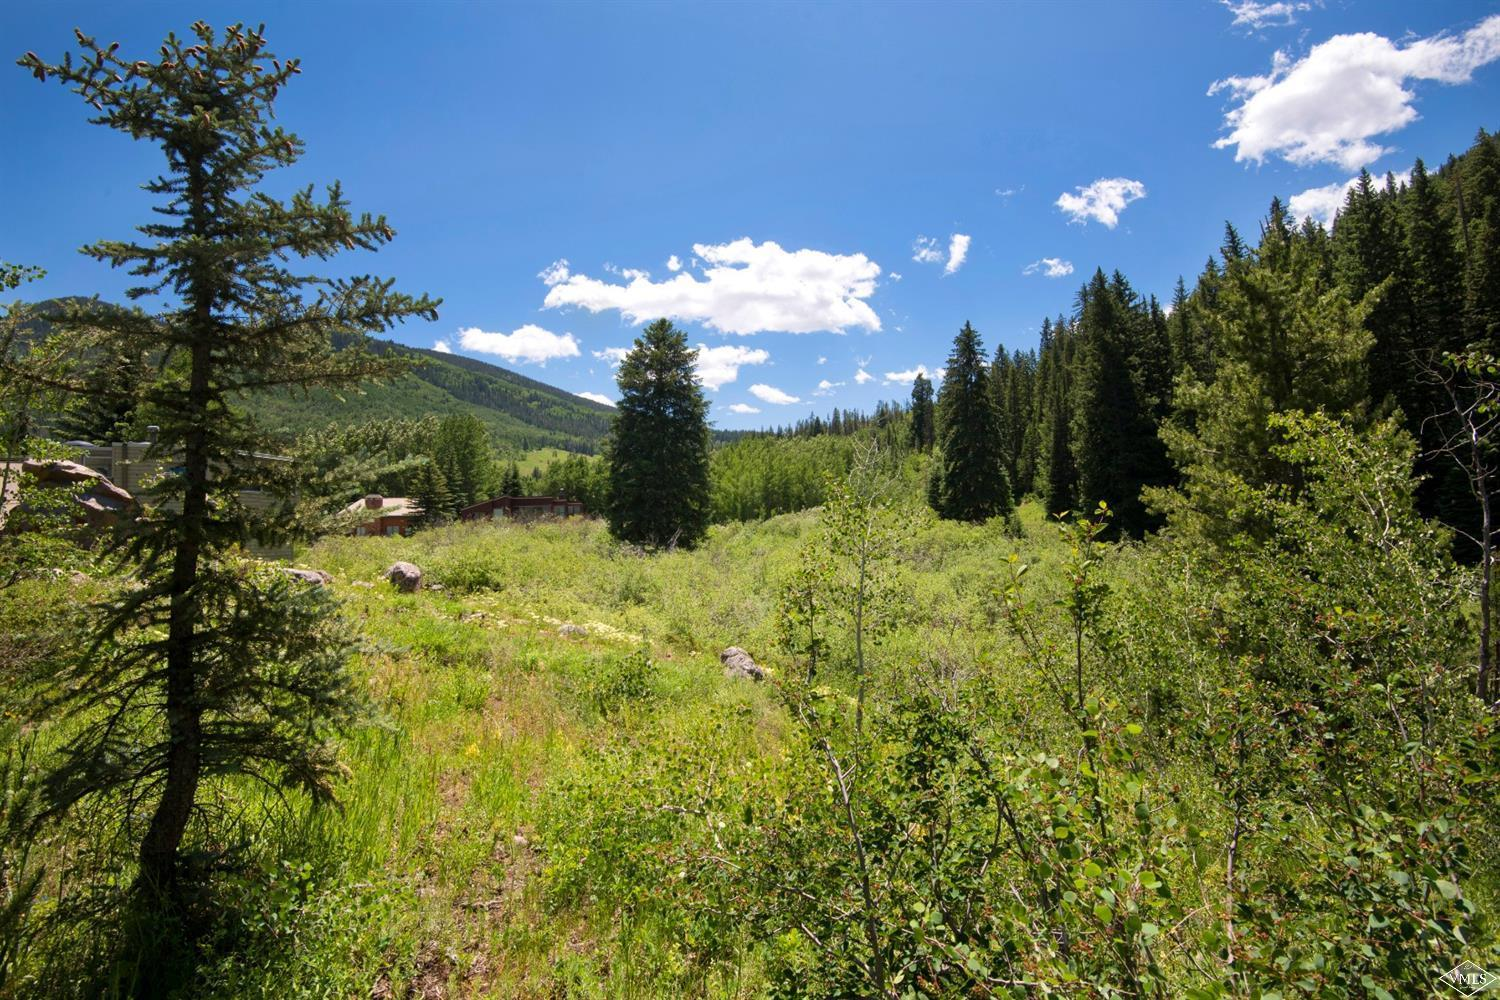 4948 Meadow Drive, Vail, CO 81657 Property Photo - Vail, CO real estate listing